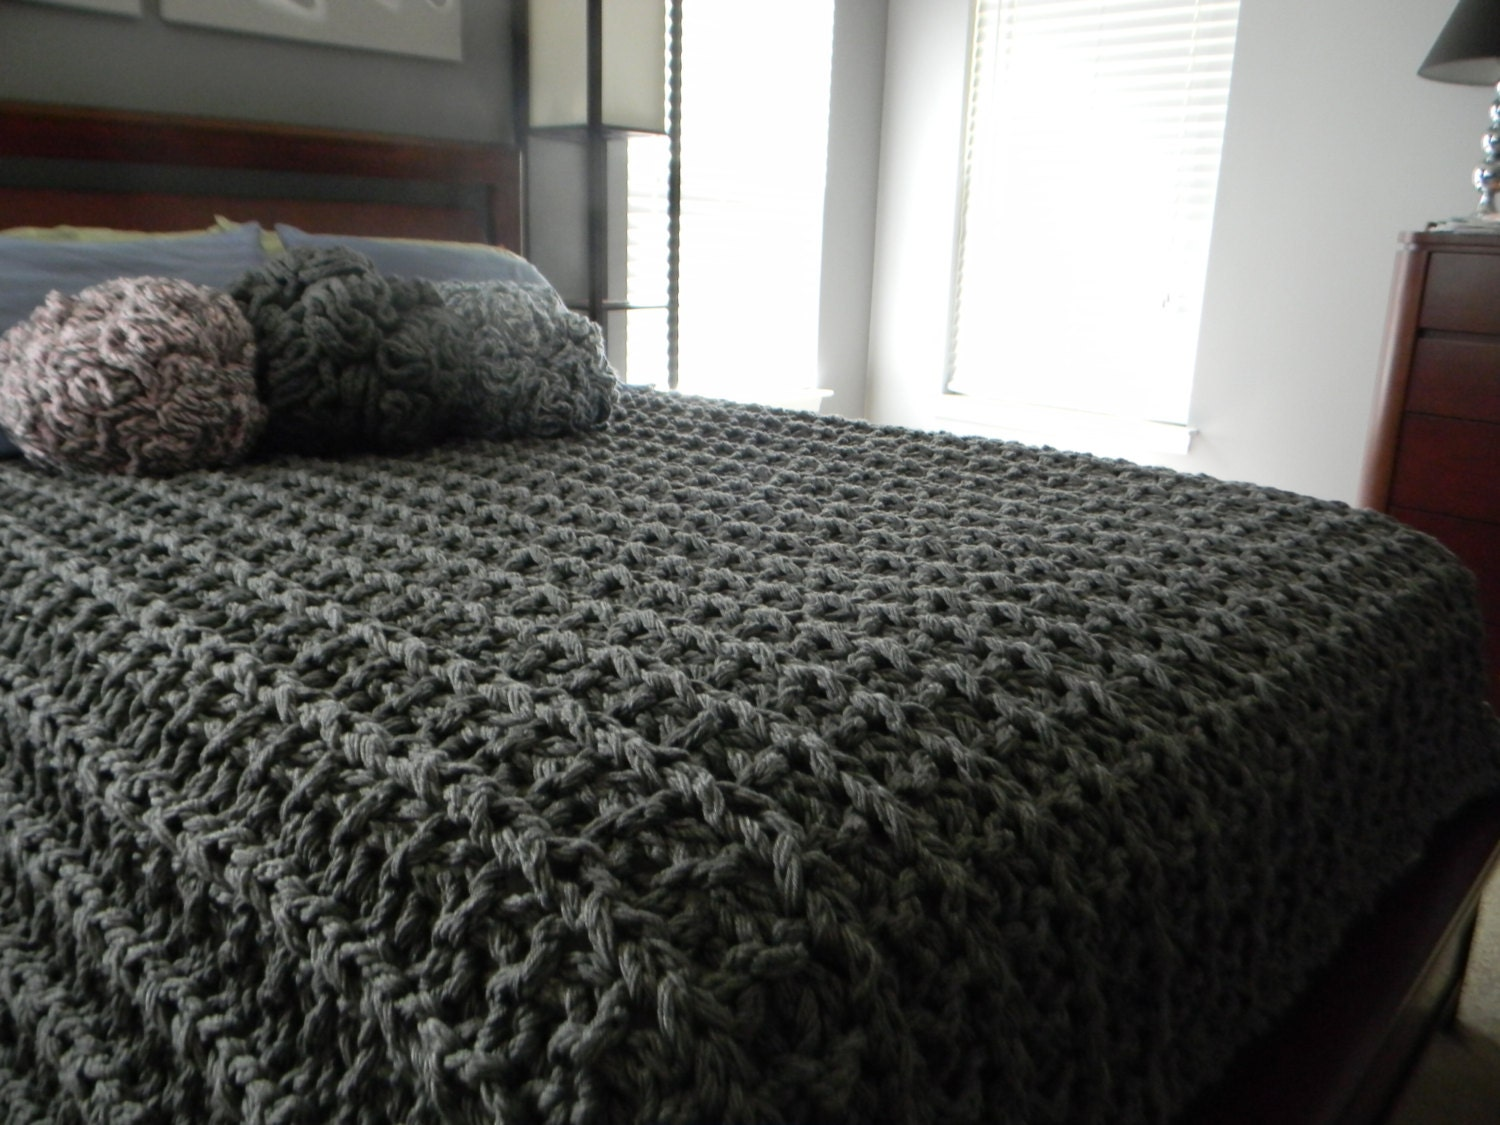 Knitting Patterns For Bed Throws : 96x84 Giant Super Chunky Knit Blanket Queen